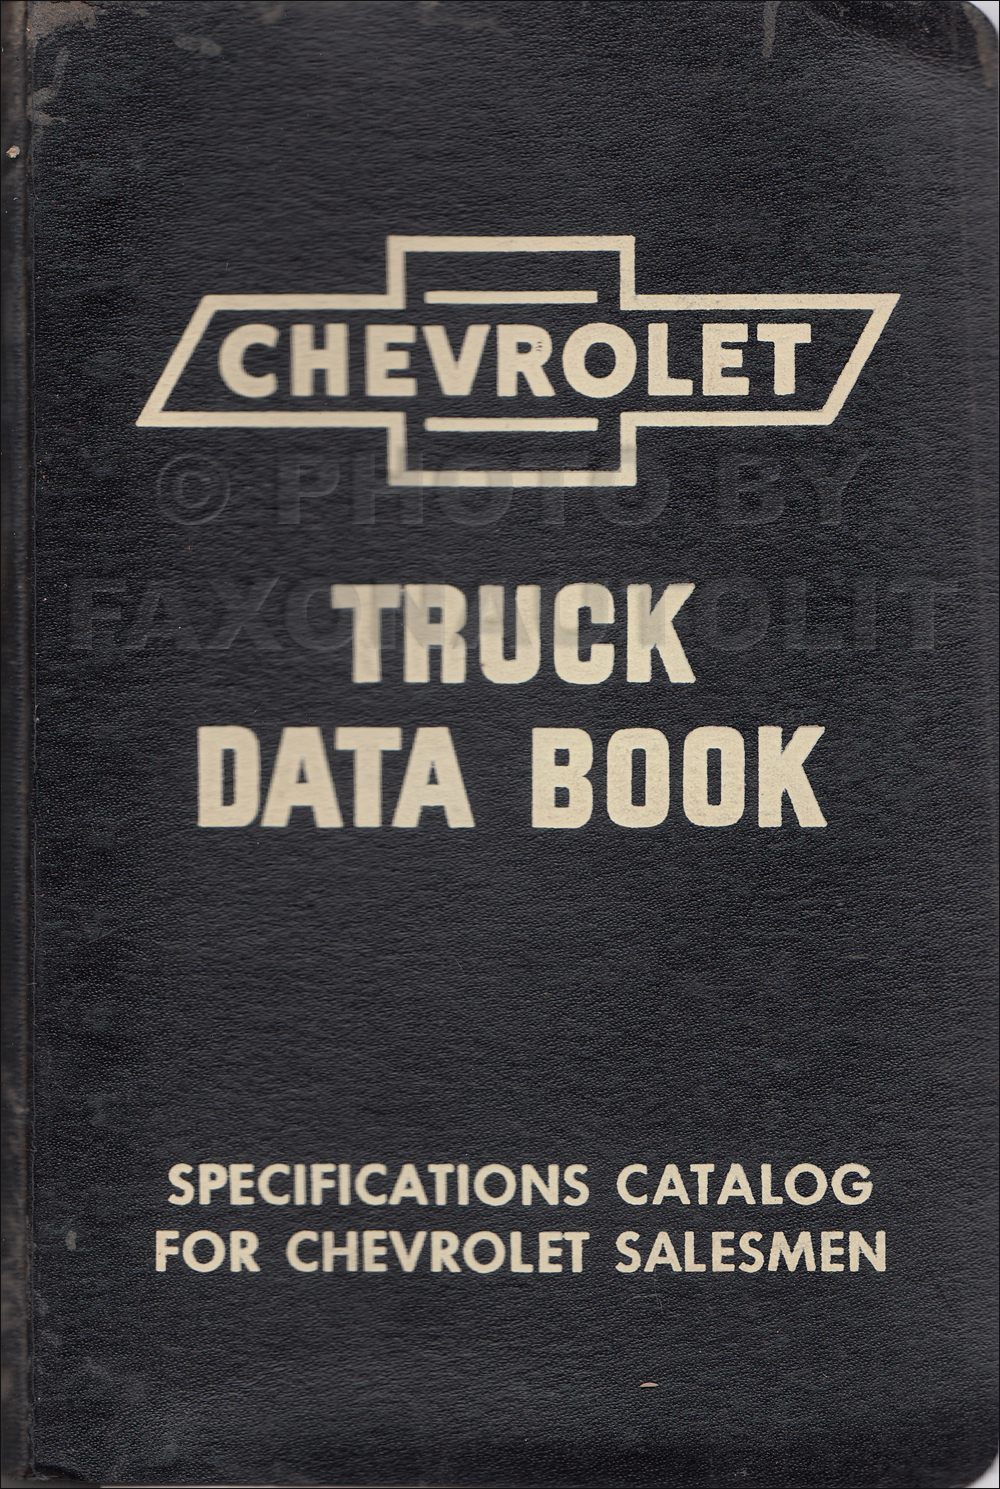 1952 Chevrolet Truck Data Book Original